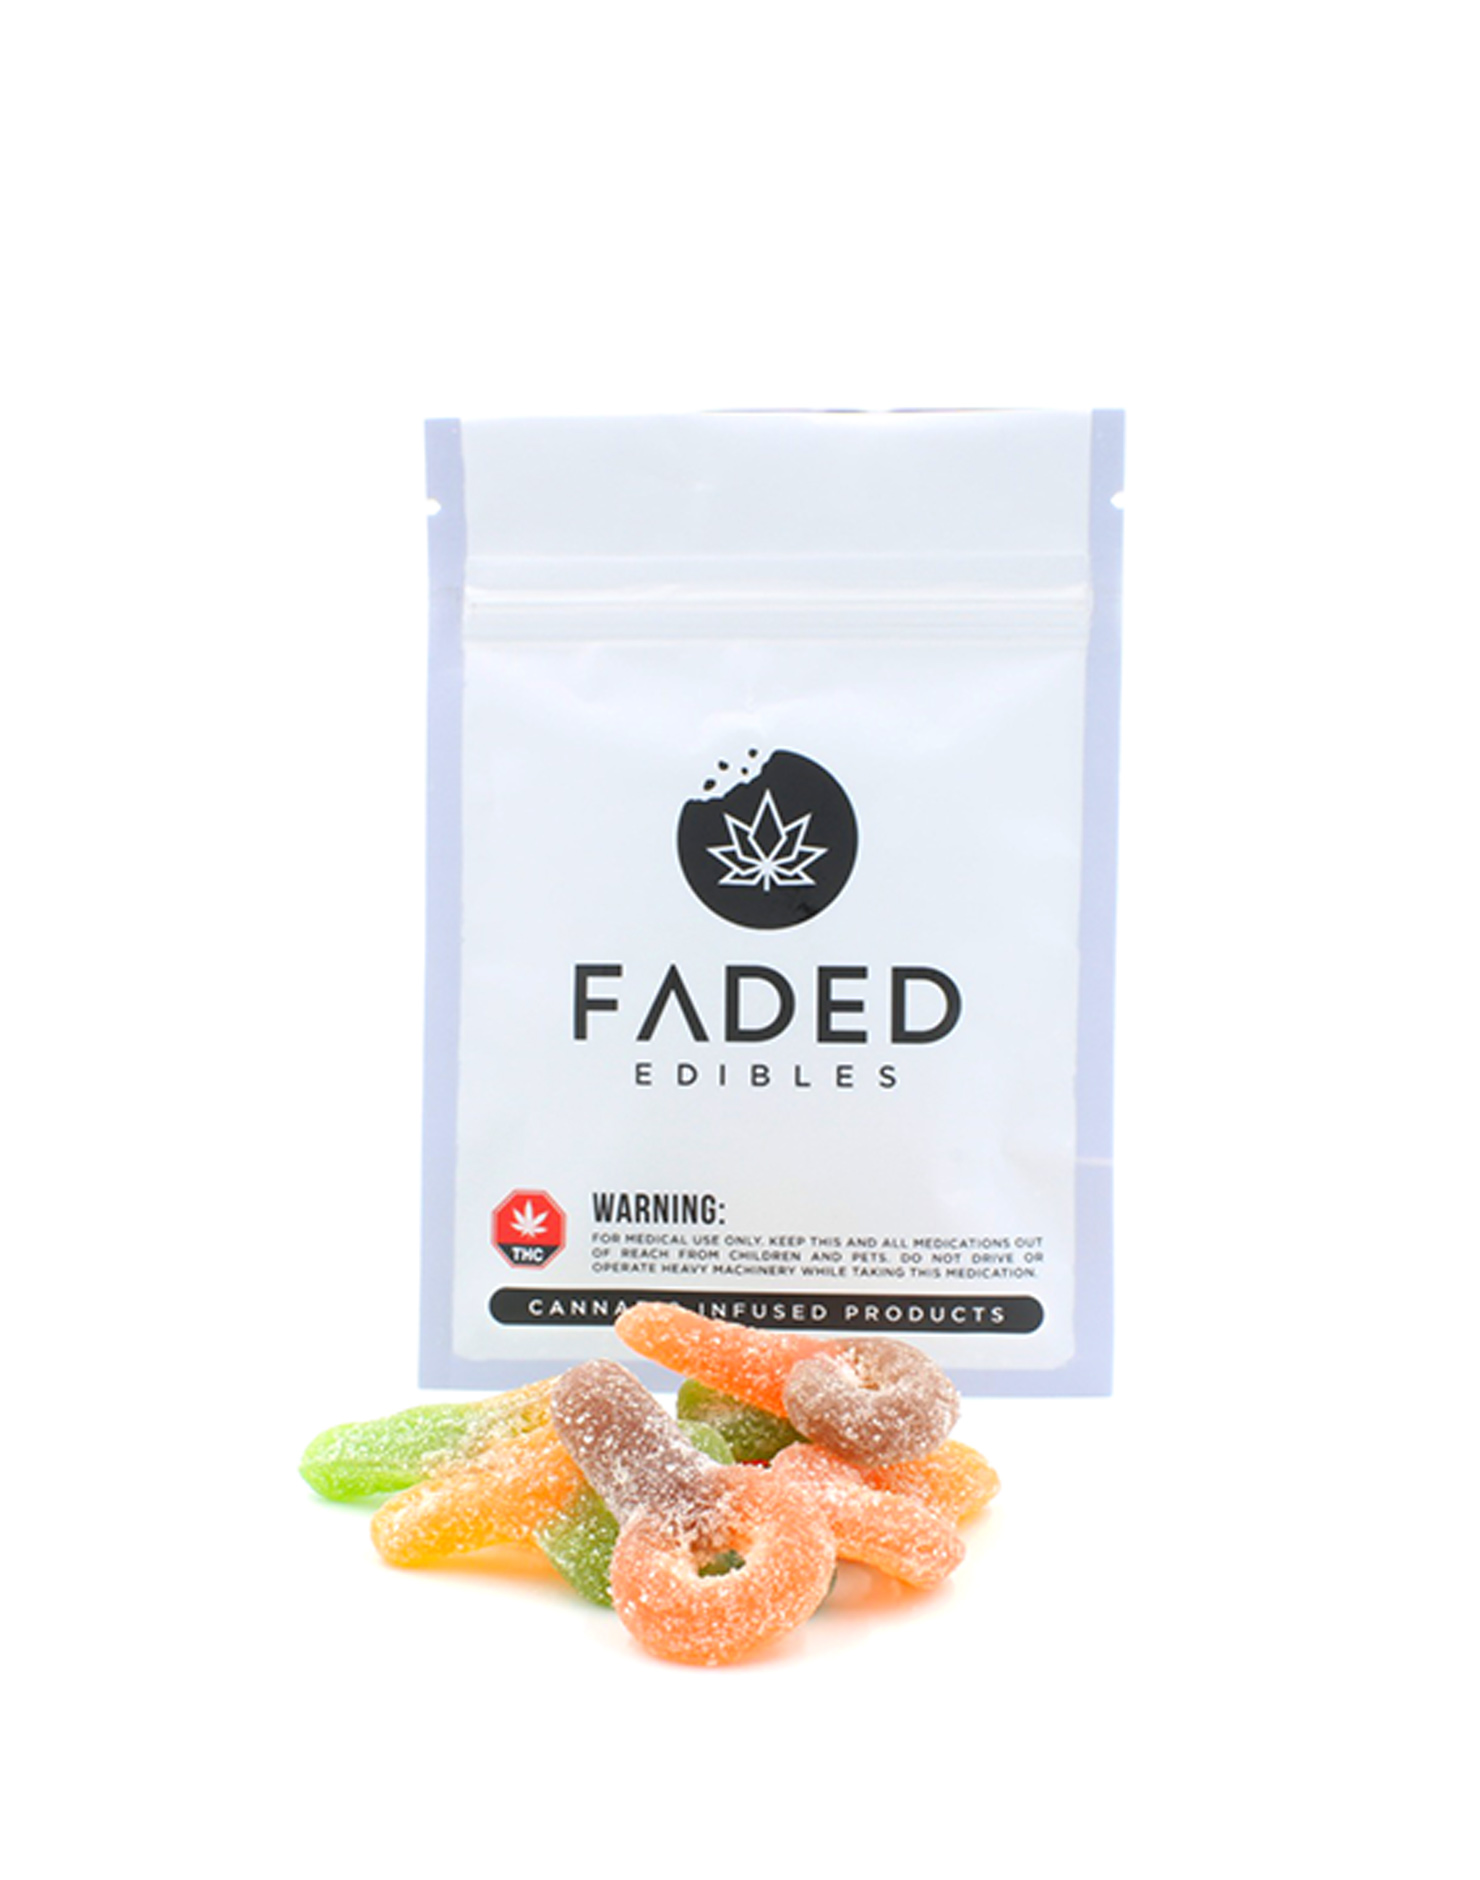 Sour Suckers by Faded Edibles (150mg THC) by Ganja Grams - Image © 2018 Ganja Grams. All Rights Reserved.